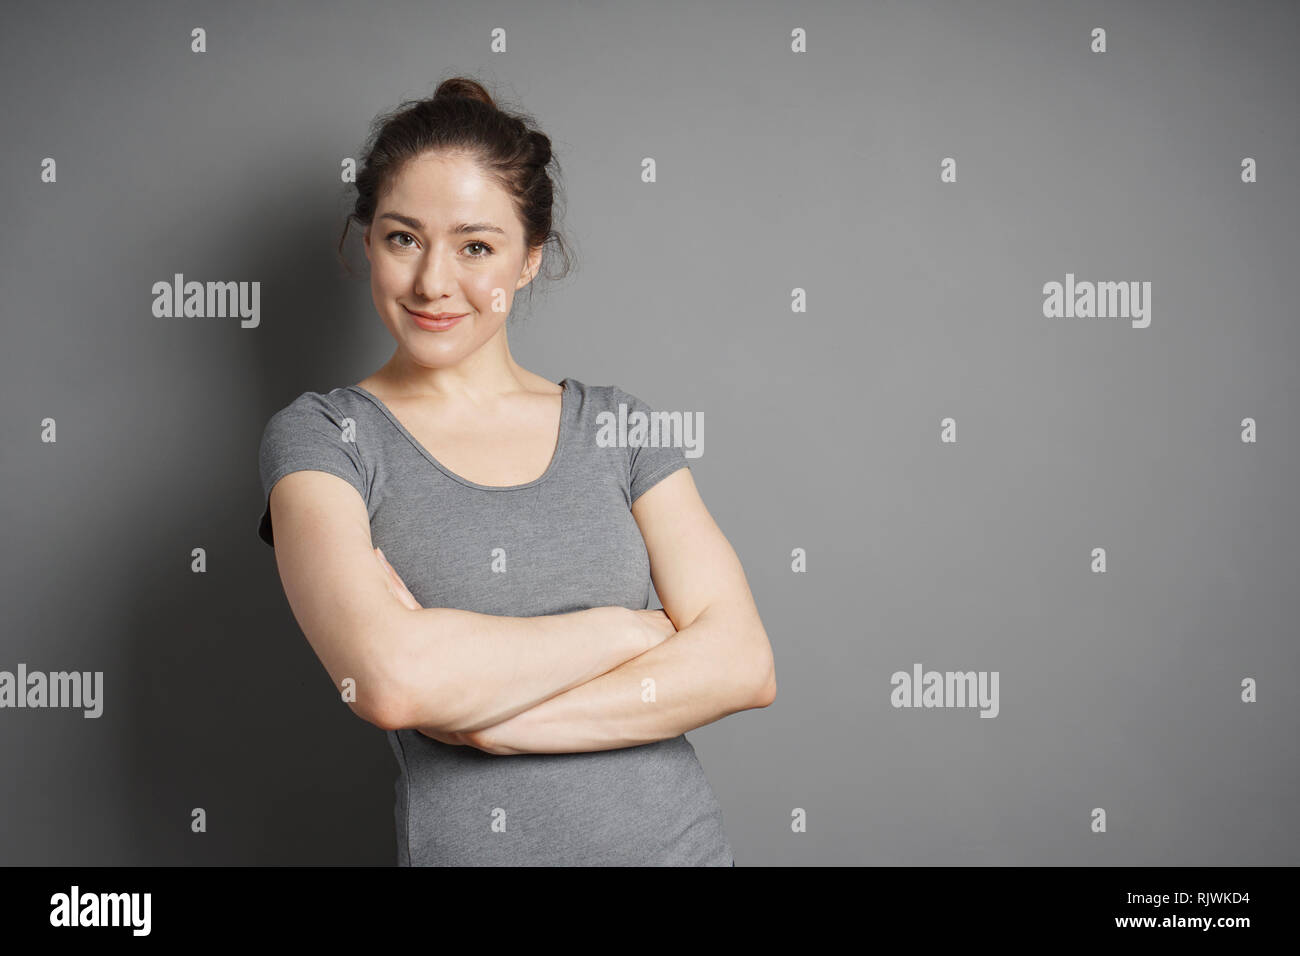 young woman with contented smile and crossed arms against gray background with copy space - Stock Image